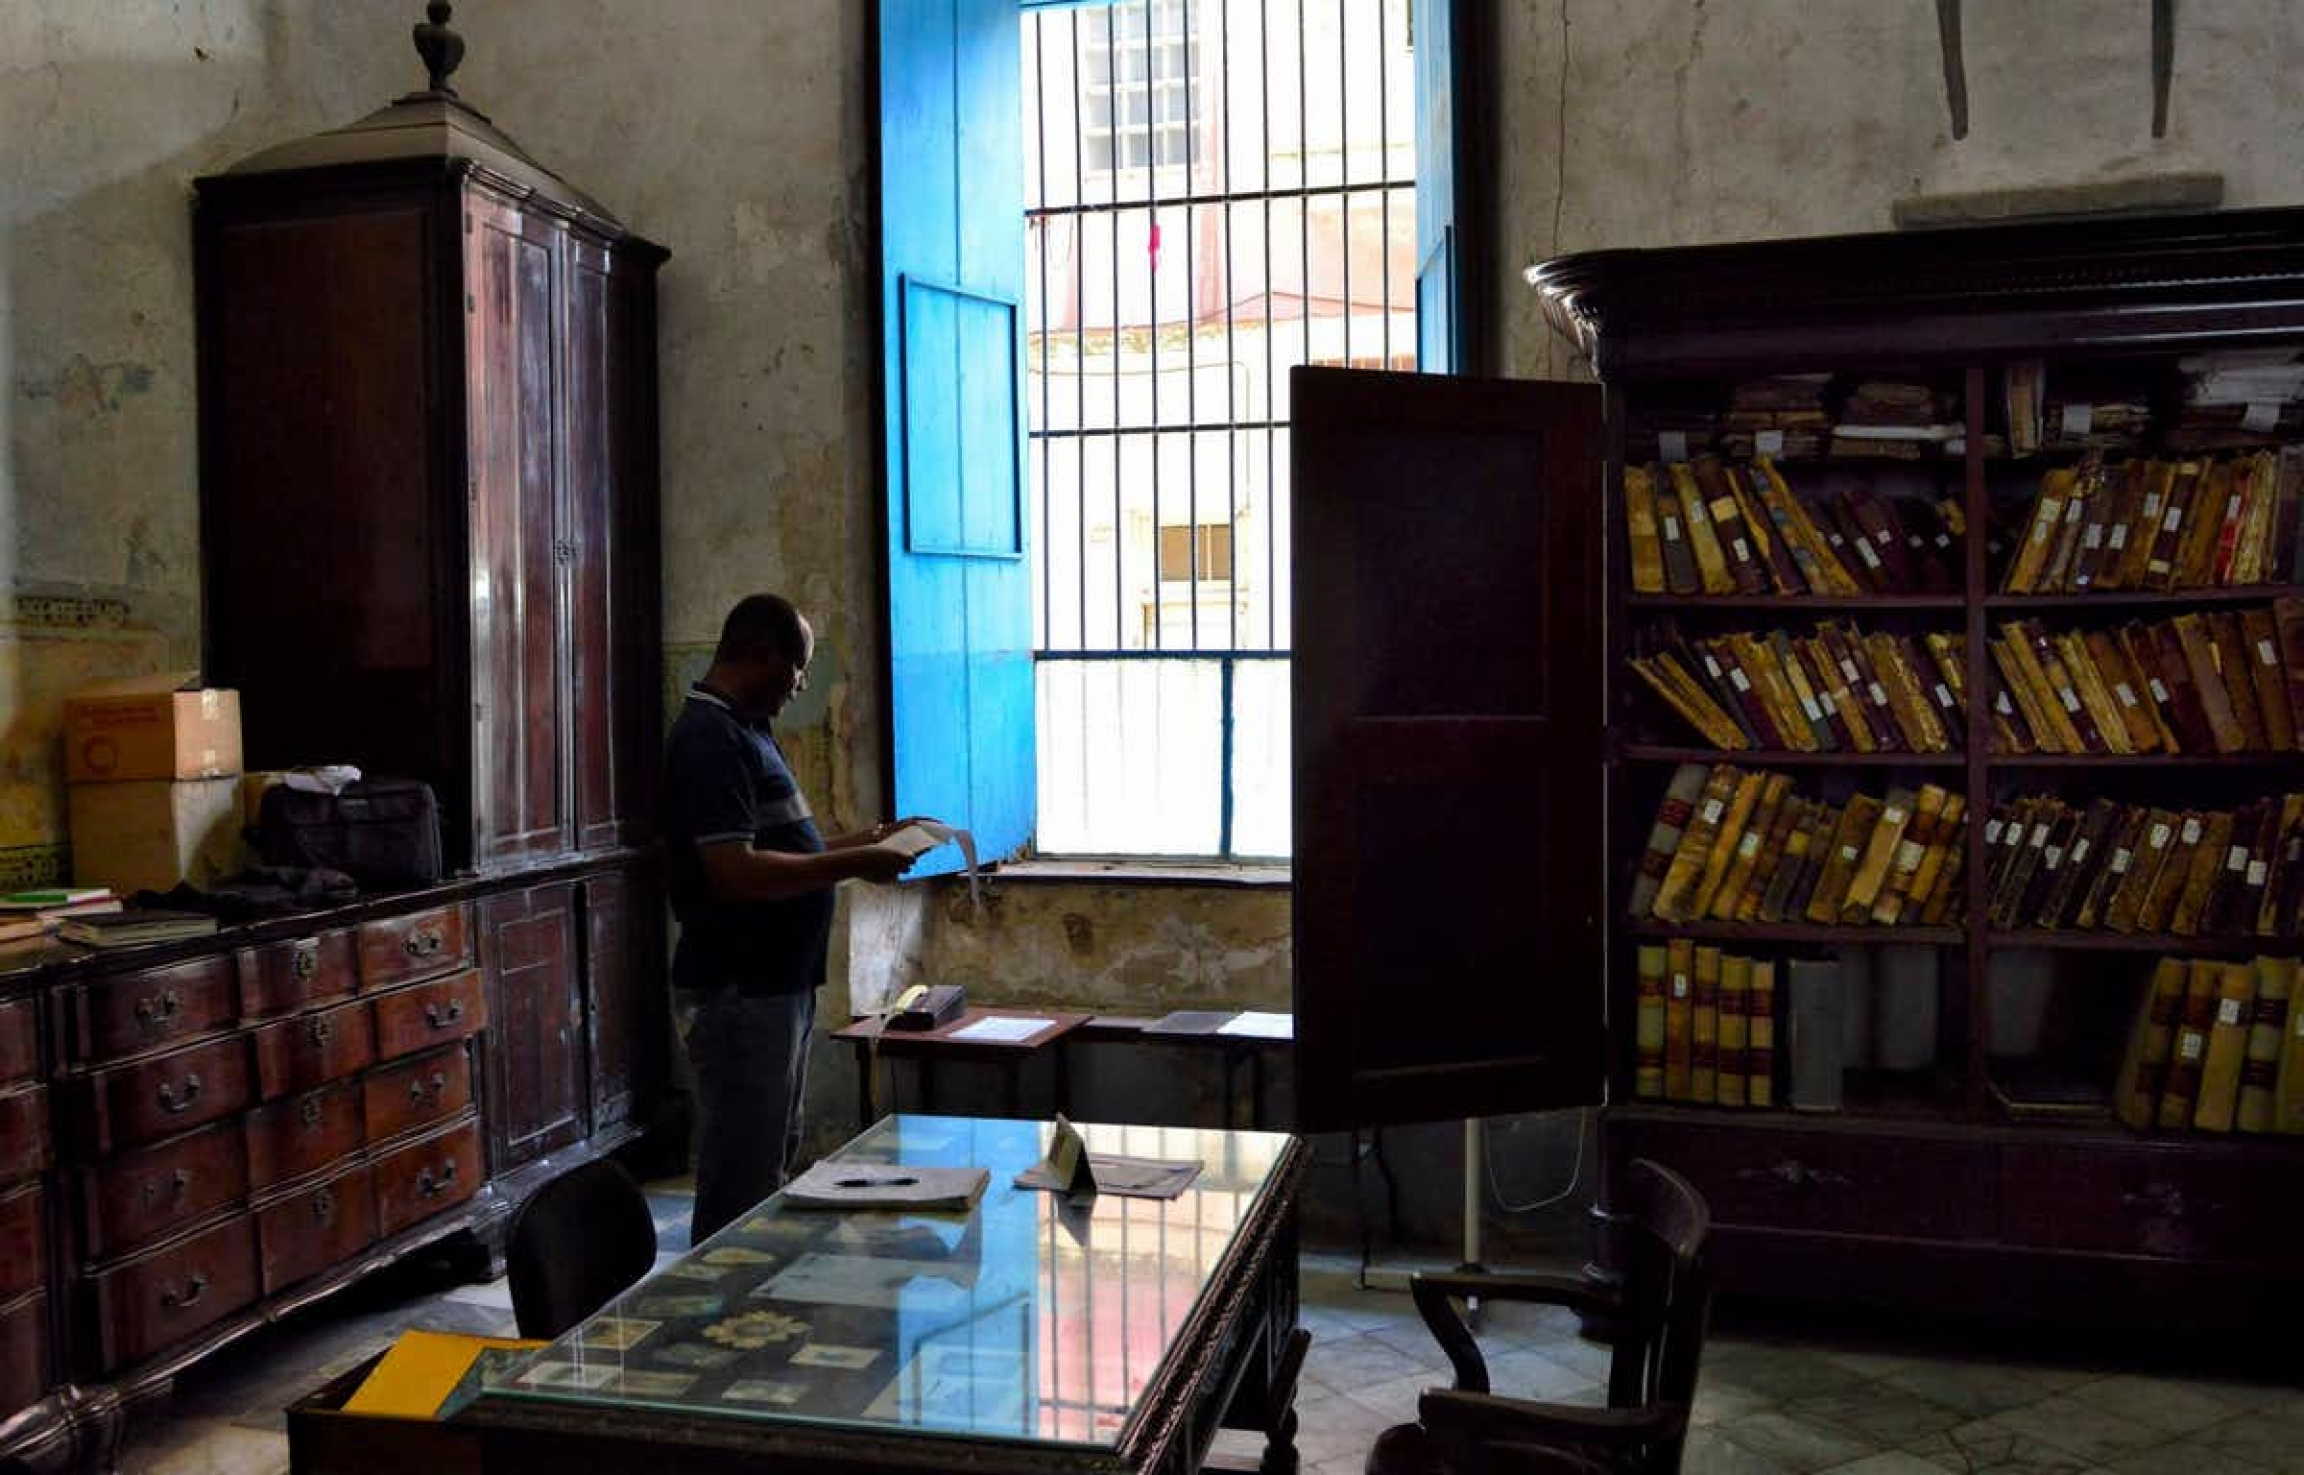 An archive in Cuba contains paper treasures that are hard to use and study —even in person.